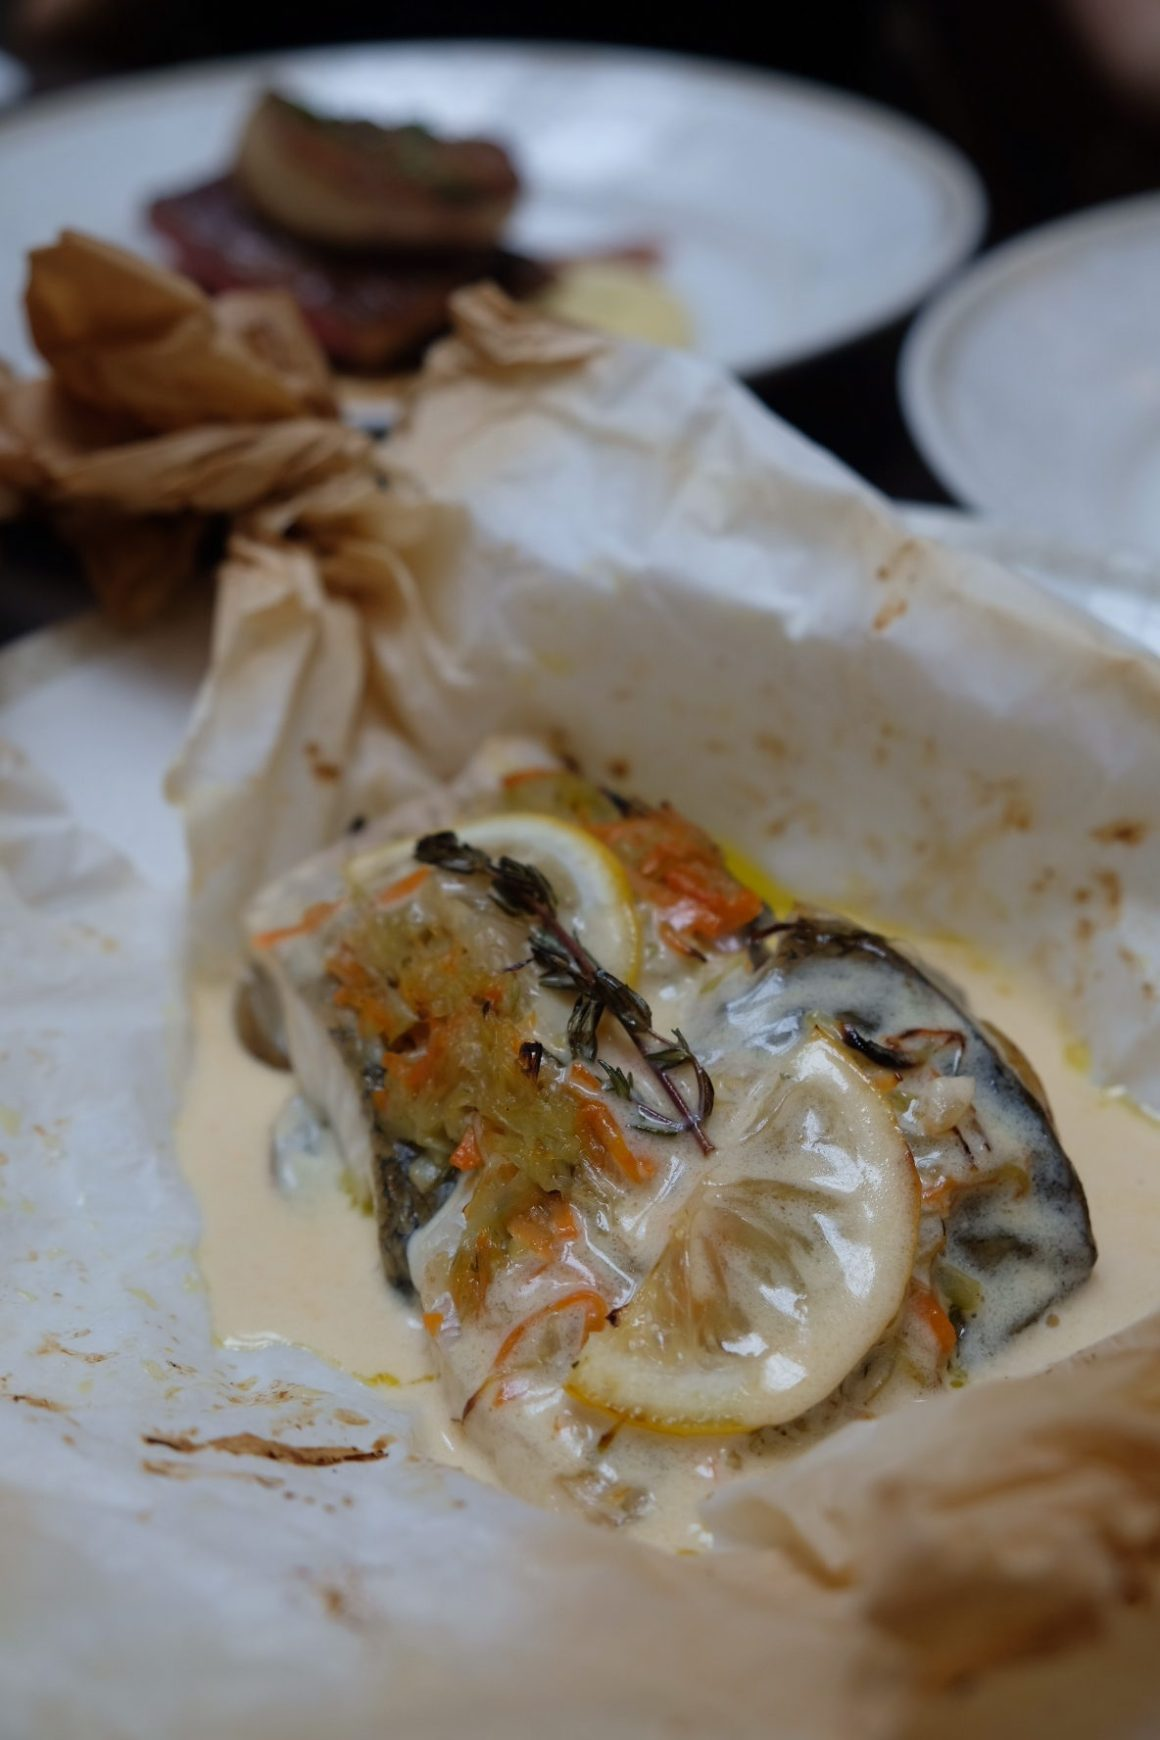 Poulet x Chef Justin Quek Classic French Dishes At Affordable Price - Baked Seabass Fillet En Papillote ($15.90)